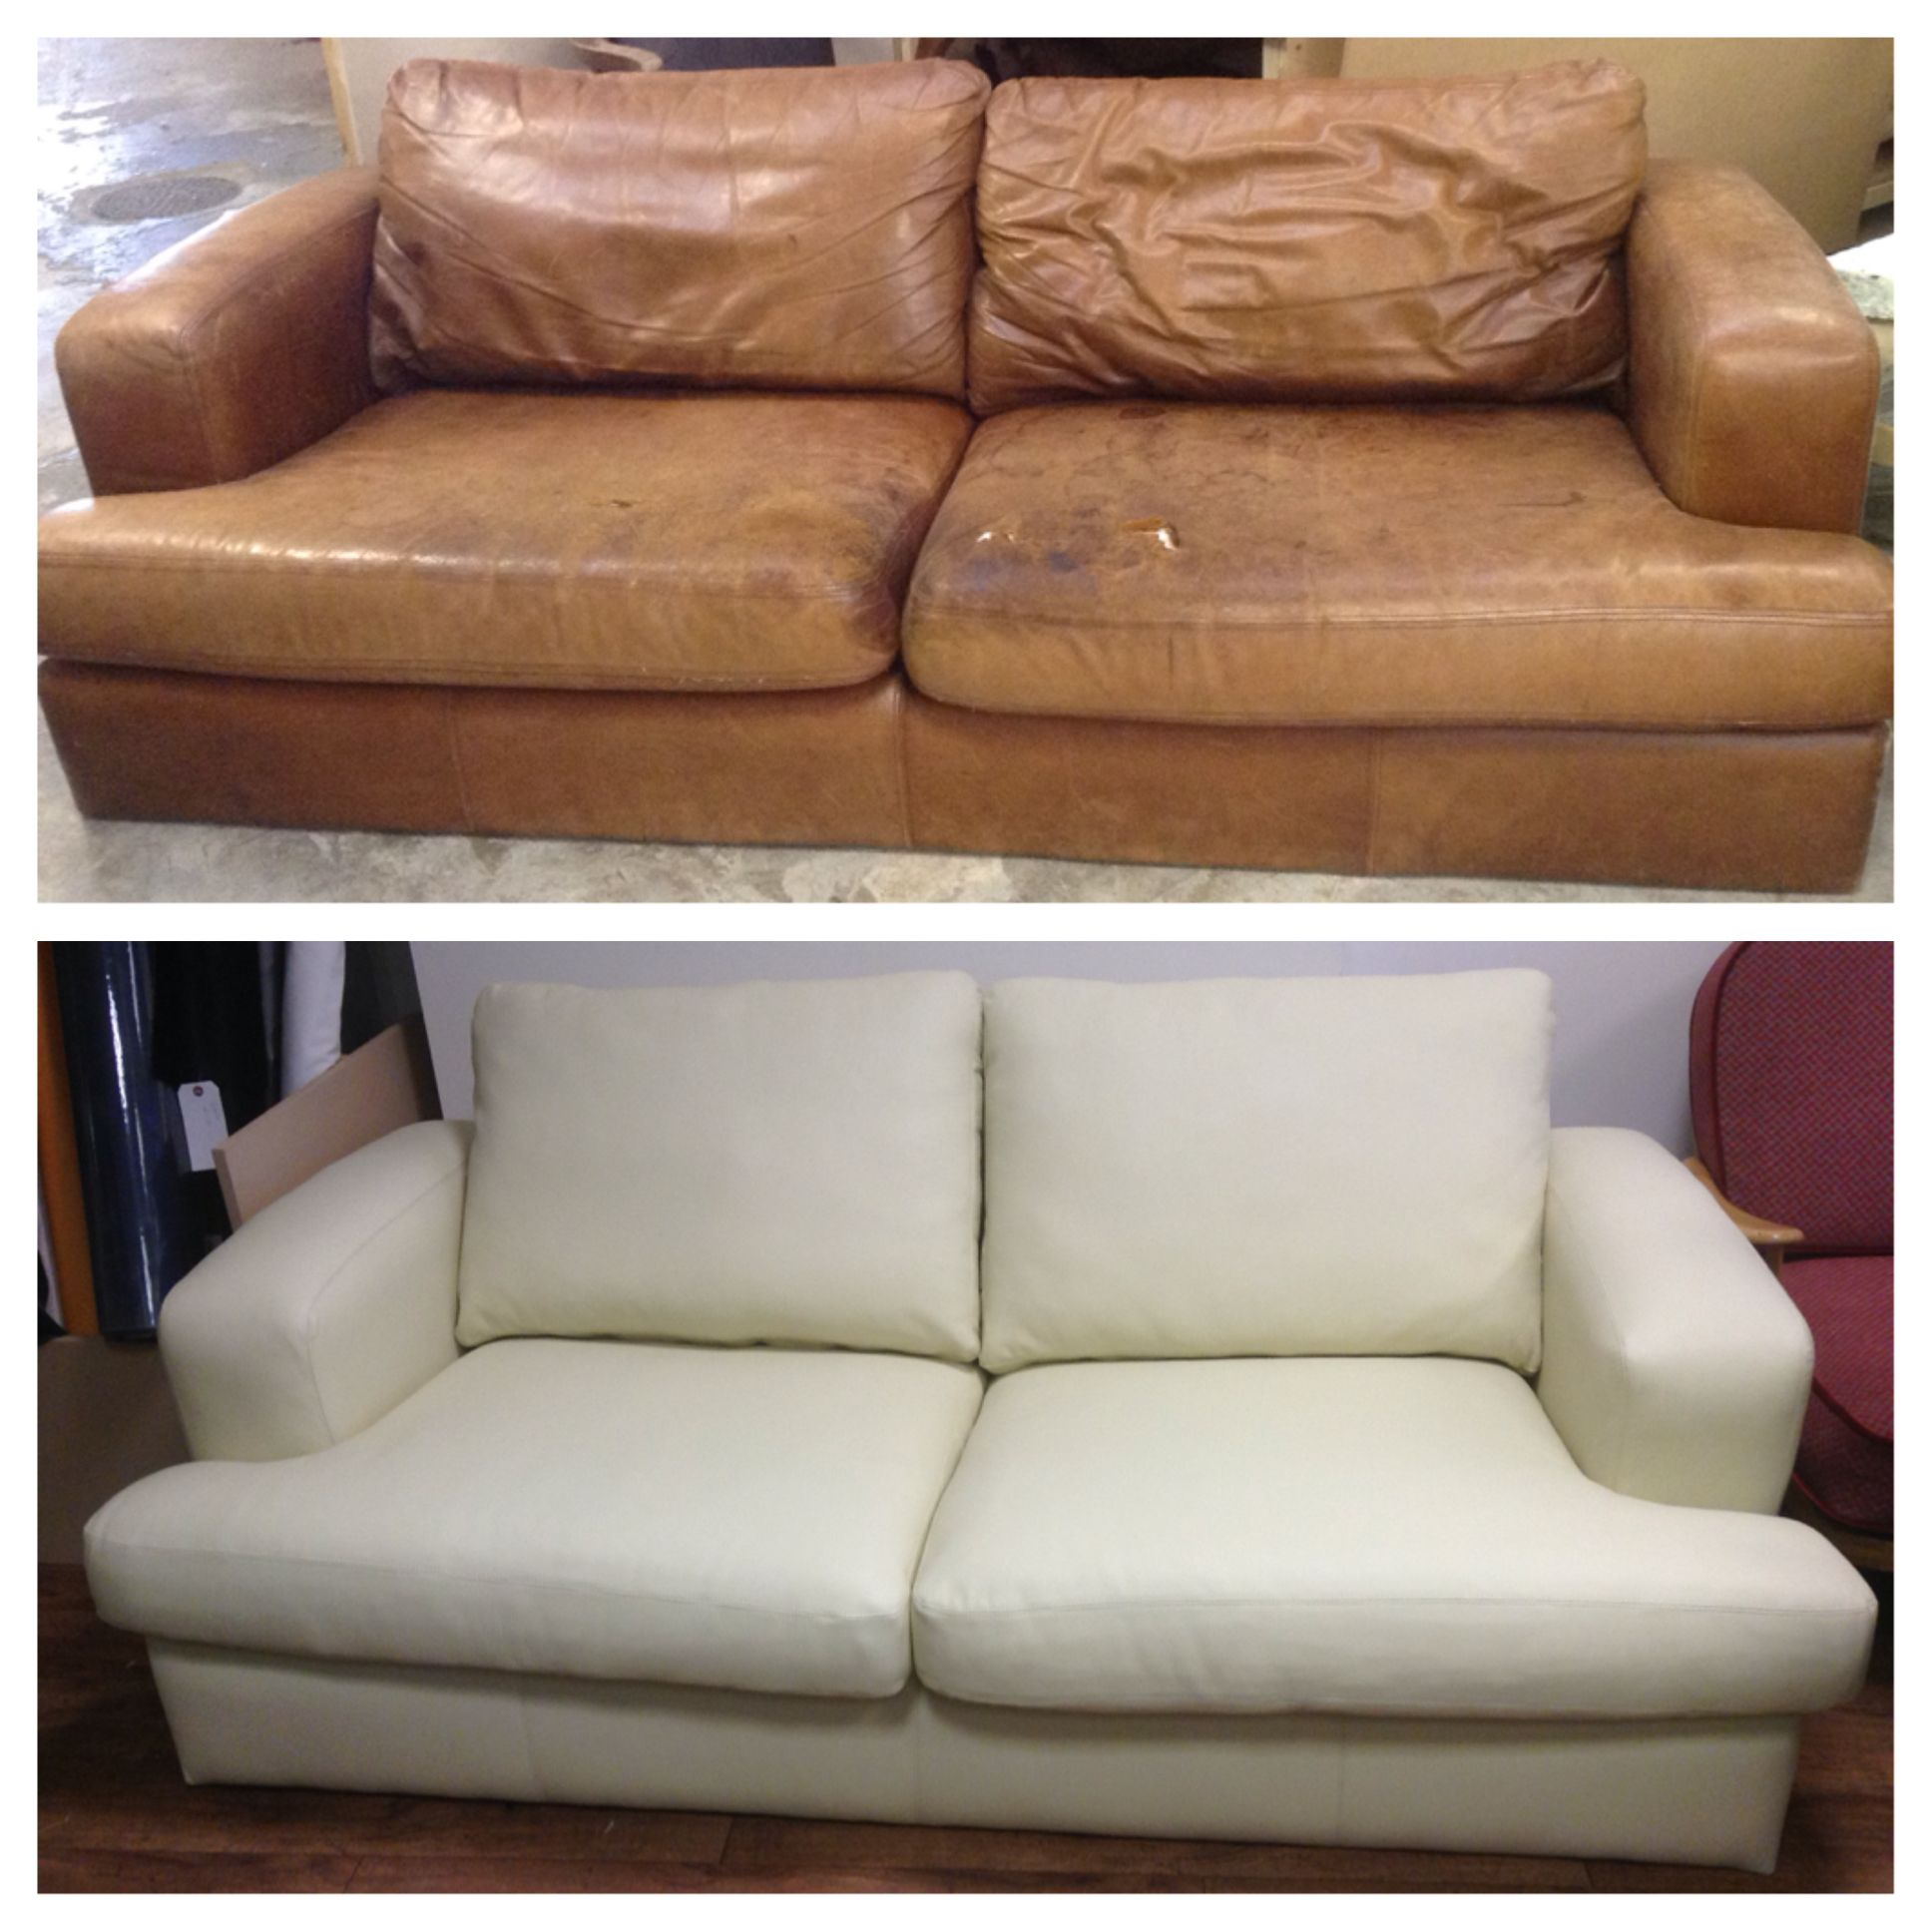 reupholster sofa in leather slim futon bed how to a two seater www